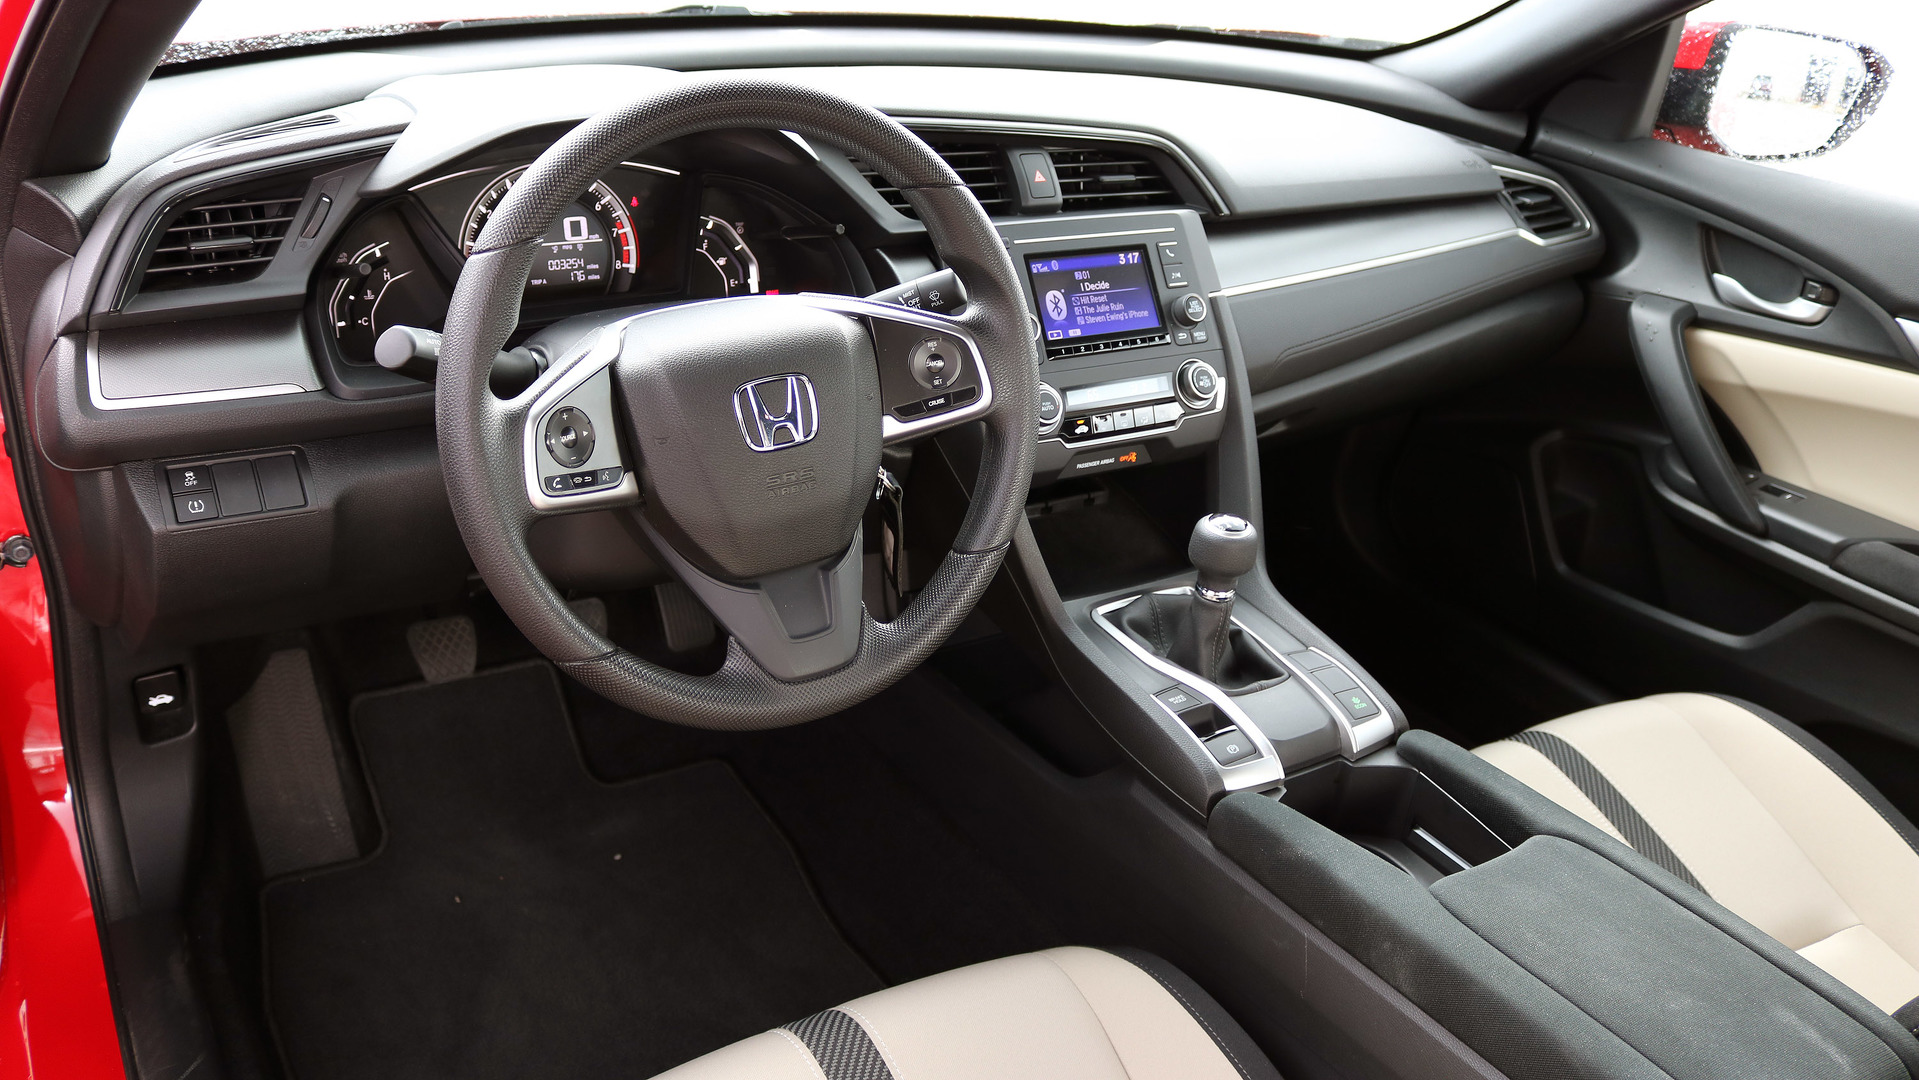 Honda Civic photo 166735